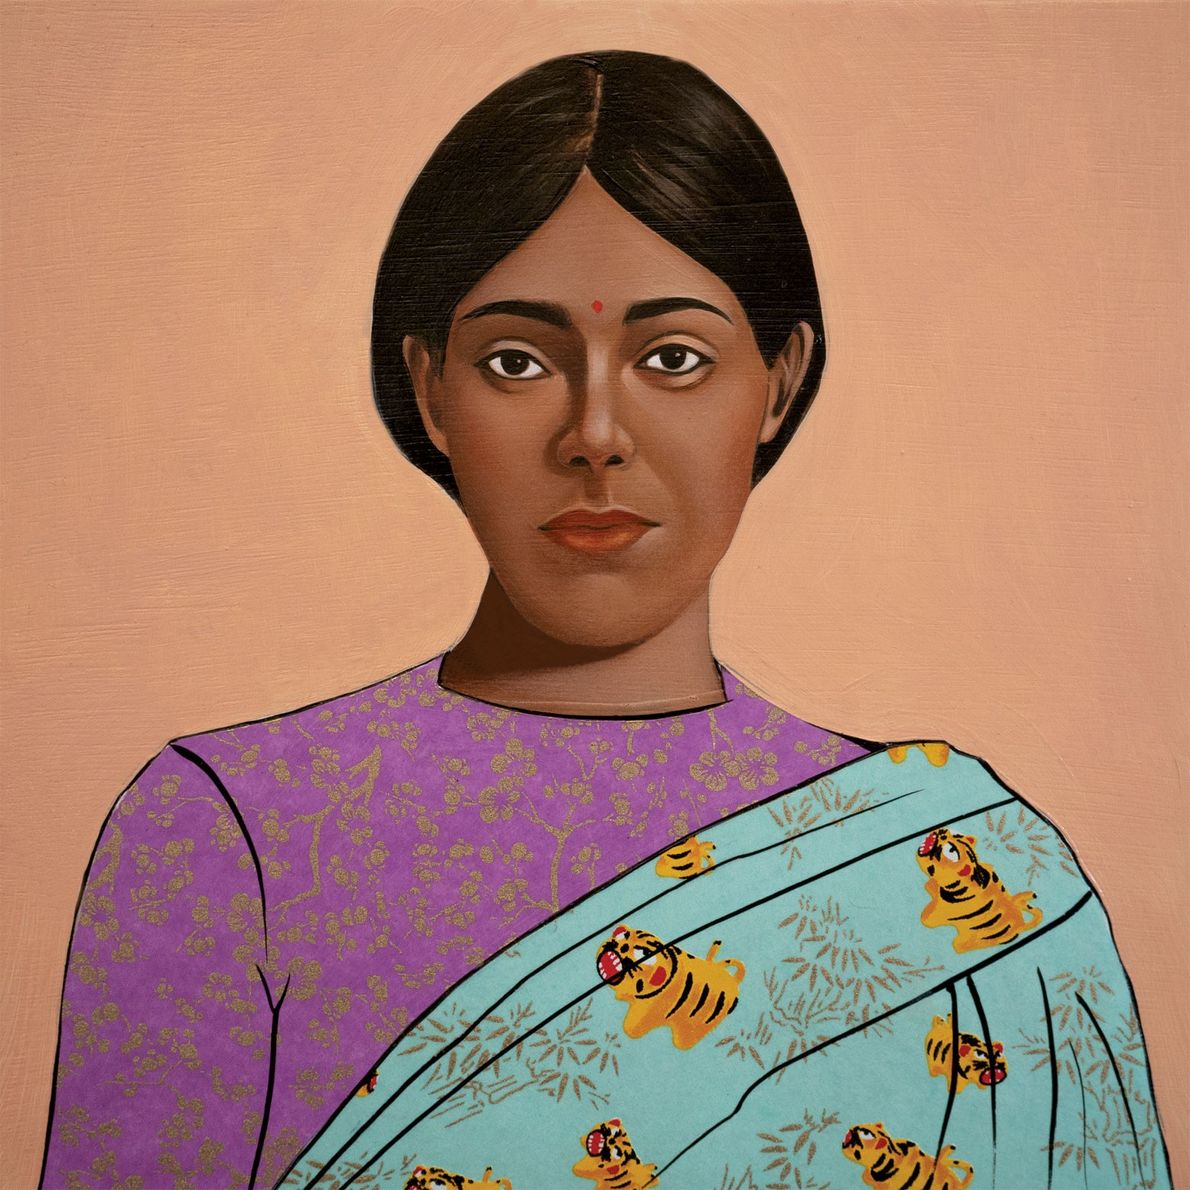 Janaki Ammal 1897-1984, Sweeter Sugarcane She rejected a planned marriage to follow her passion for botany and hybridized ...